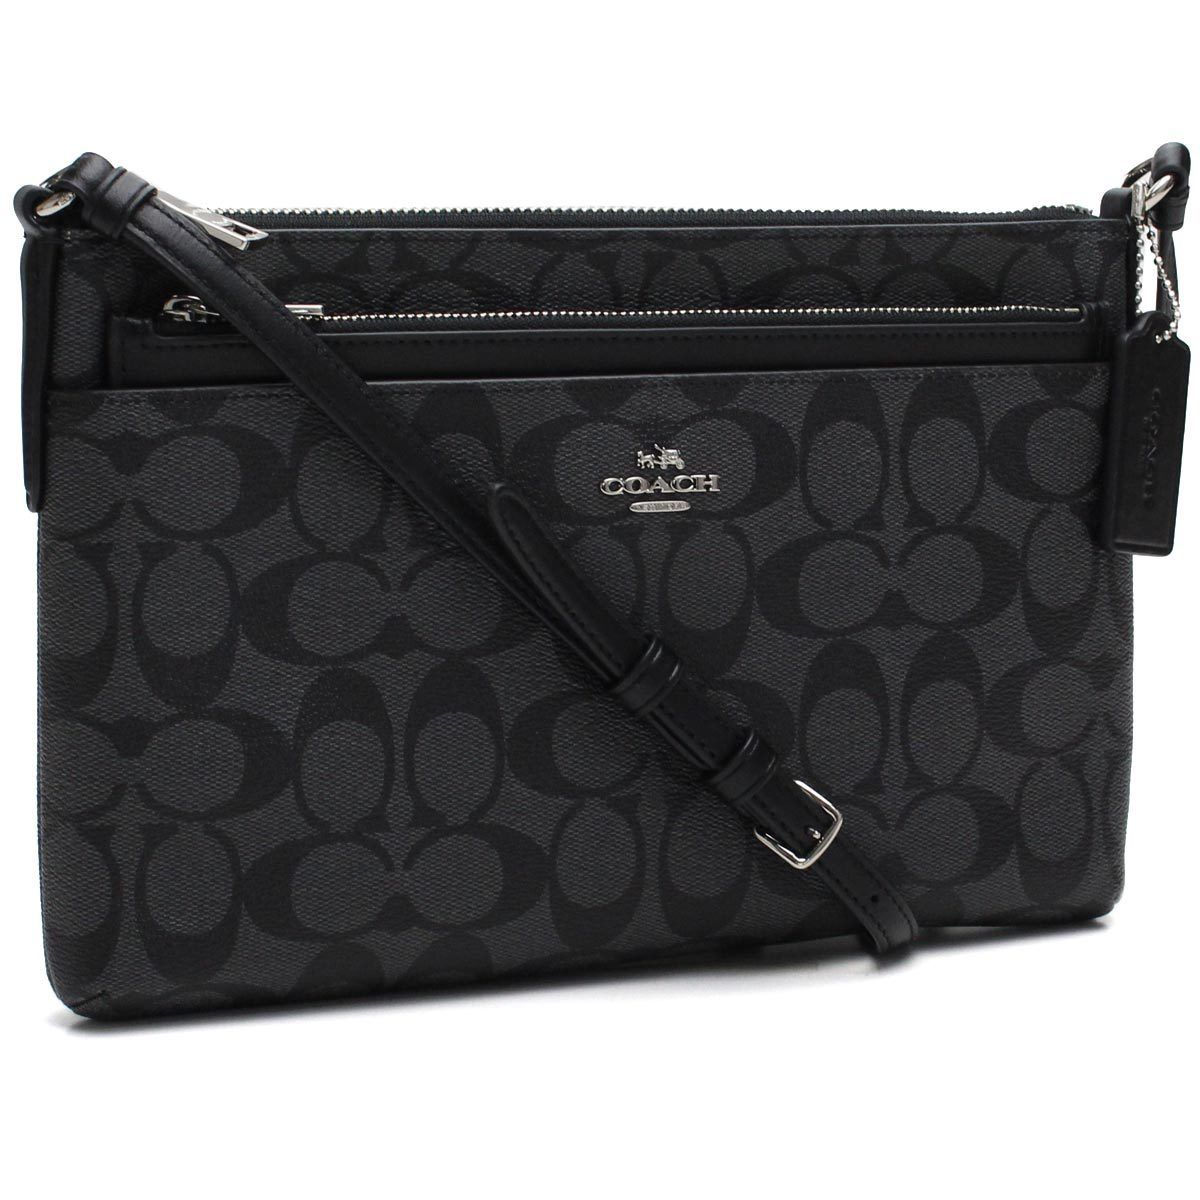 Coach East/West Crossbody w/ Pop-up Pouch in Signature Black Smoke F58316 $225